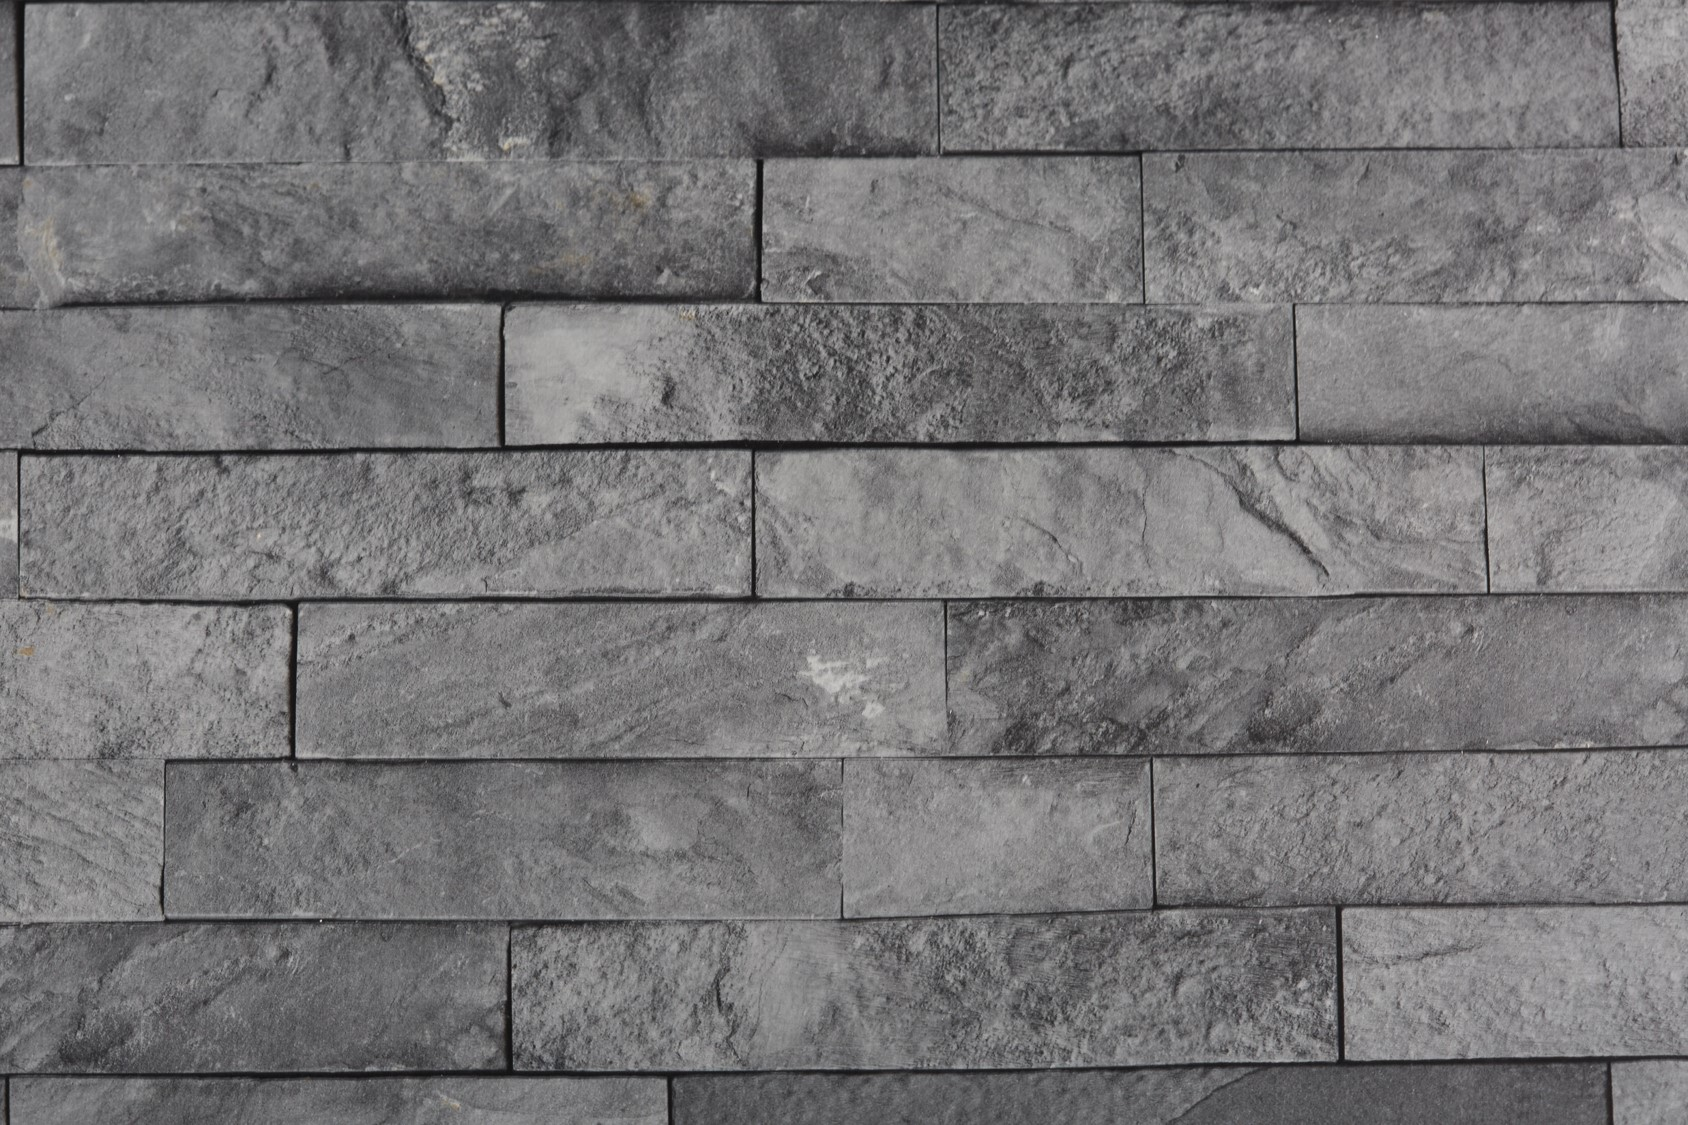 Outdoor Wall Tile Cladding